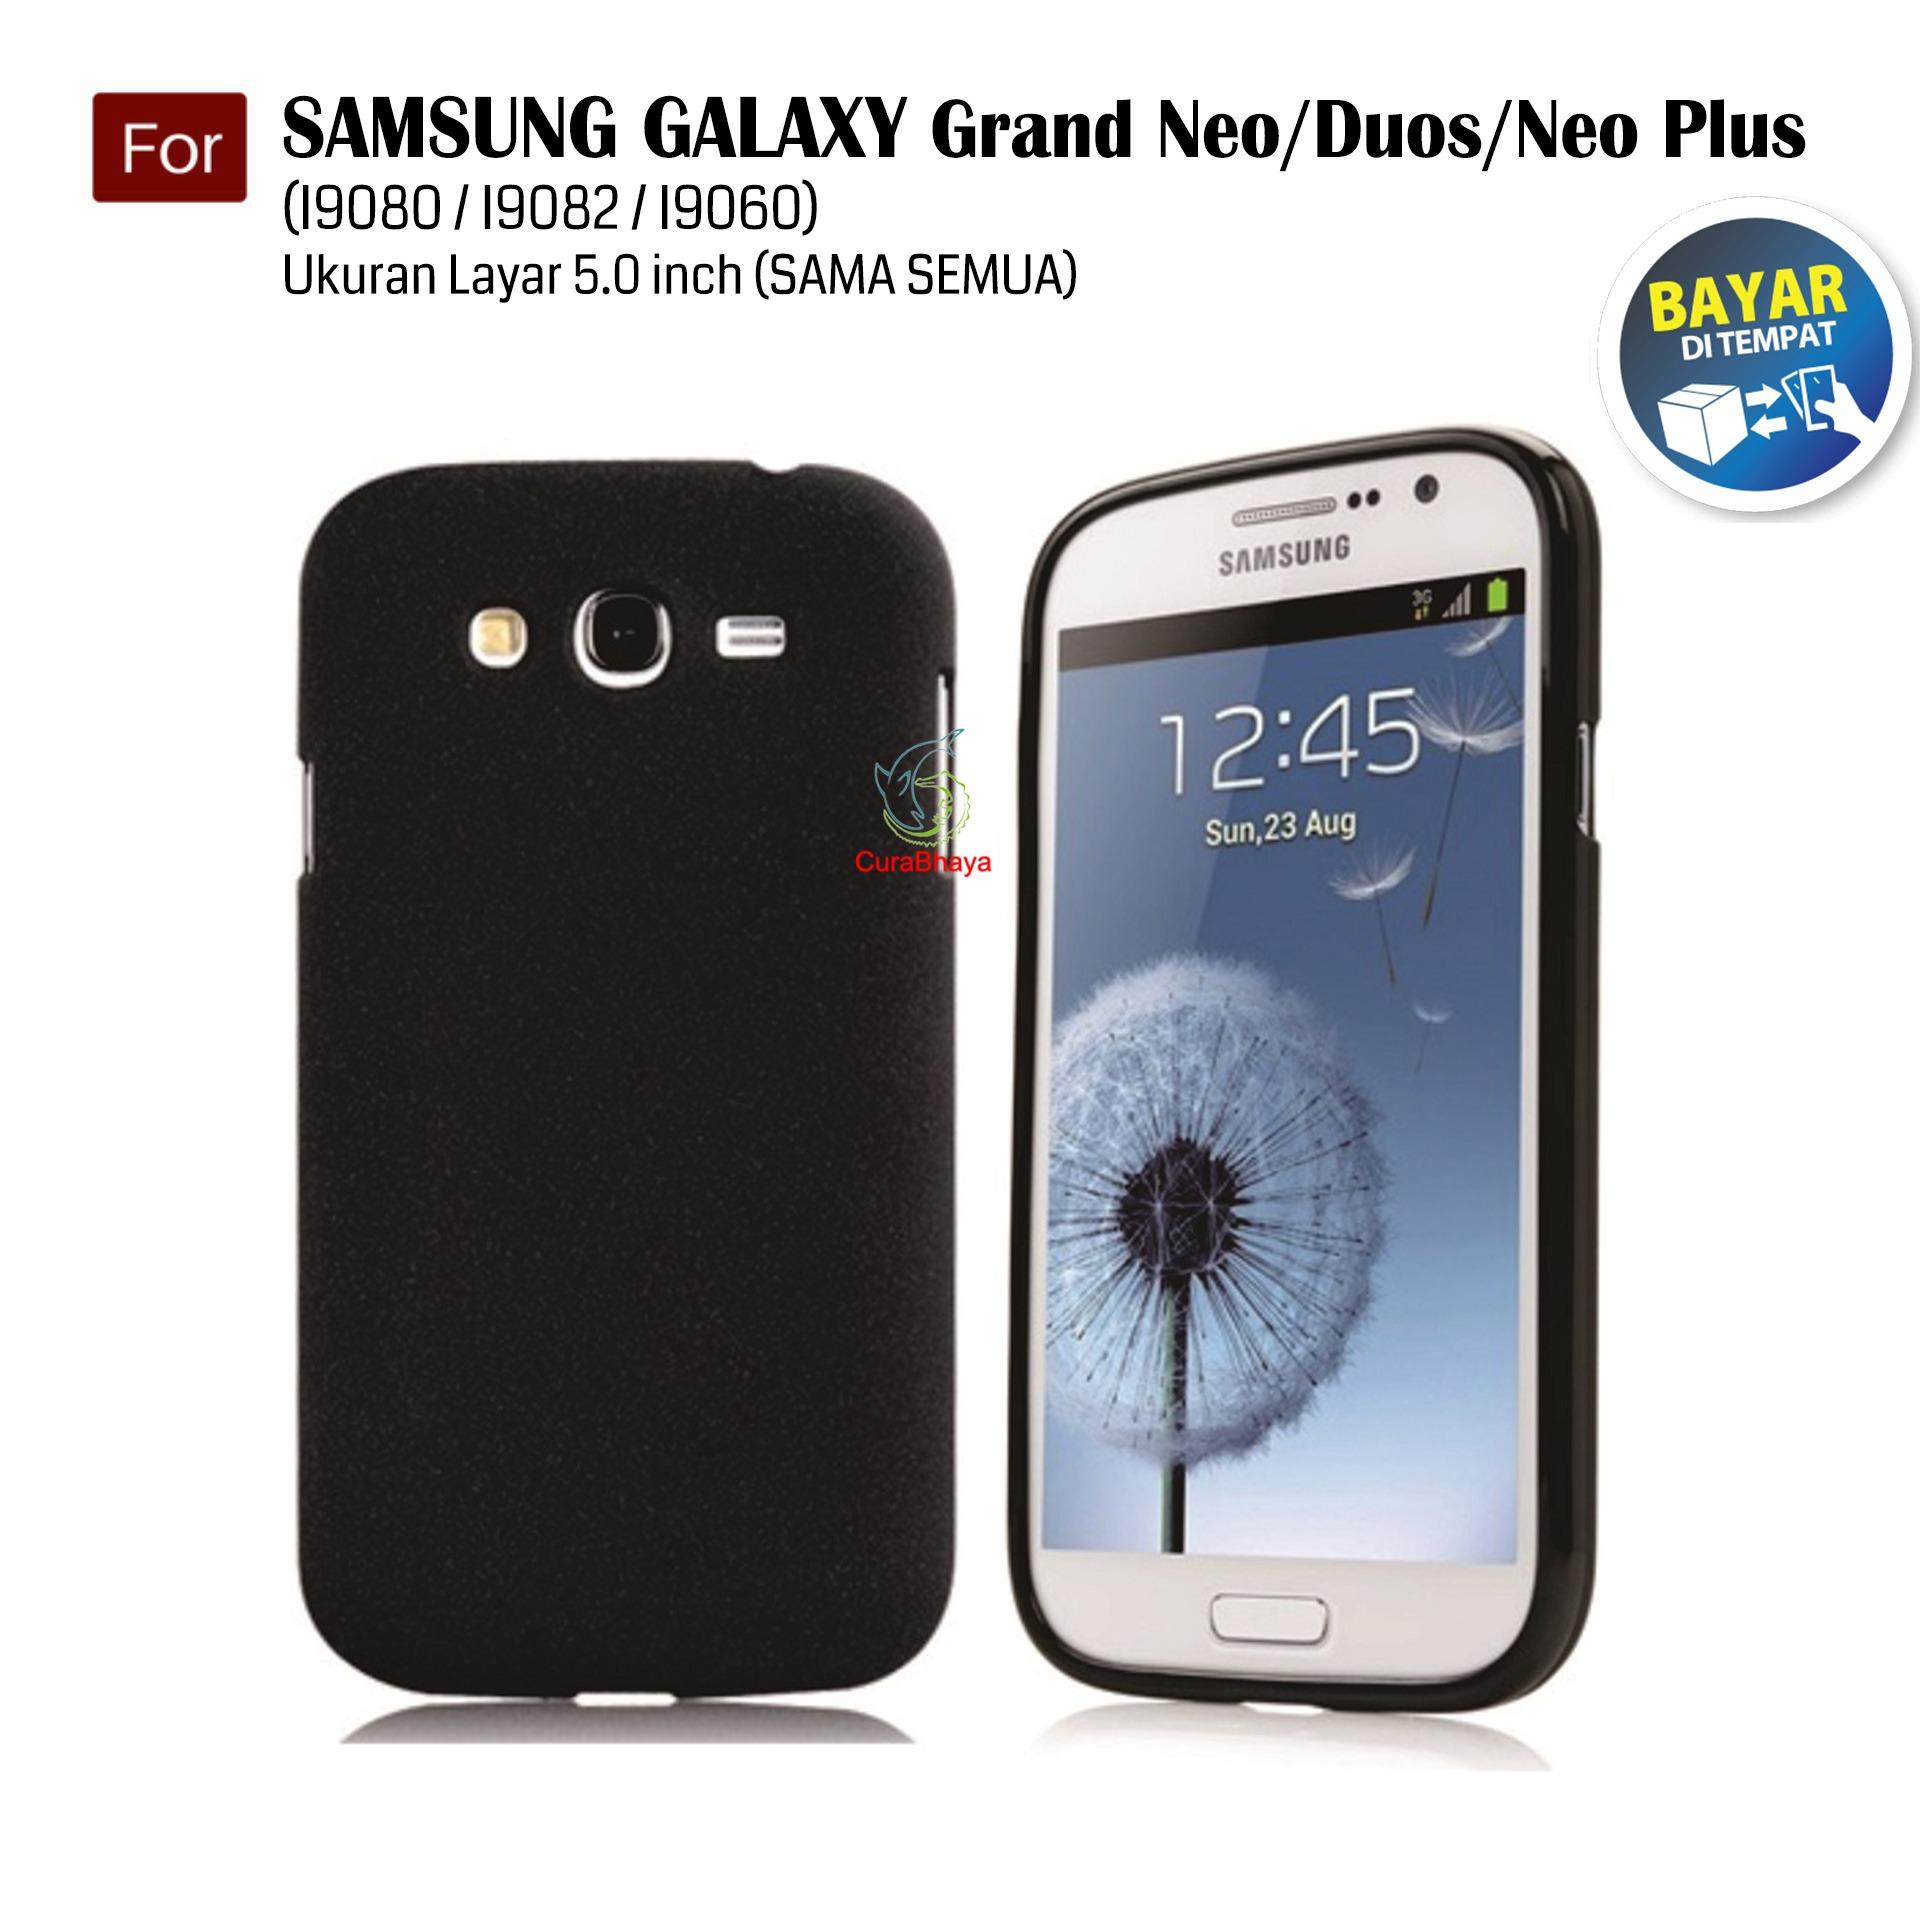 MidNight Samsung Galaxy Grand 1 / Neo / Plus / Duos / I9080 / I9082 / I9060 | Slim Case Black Matte Softcase Premium Baby Skin - Hitam